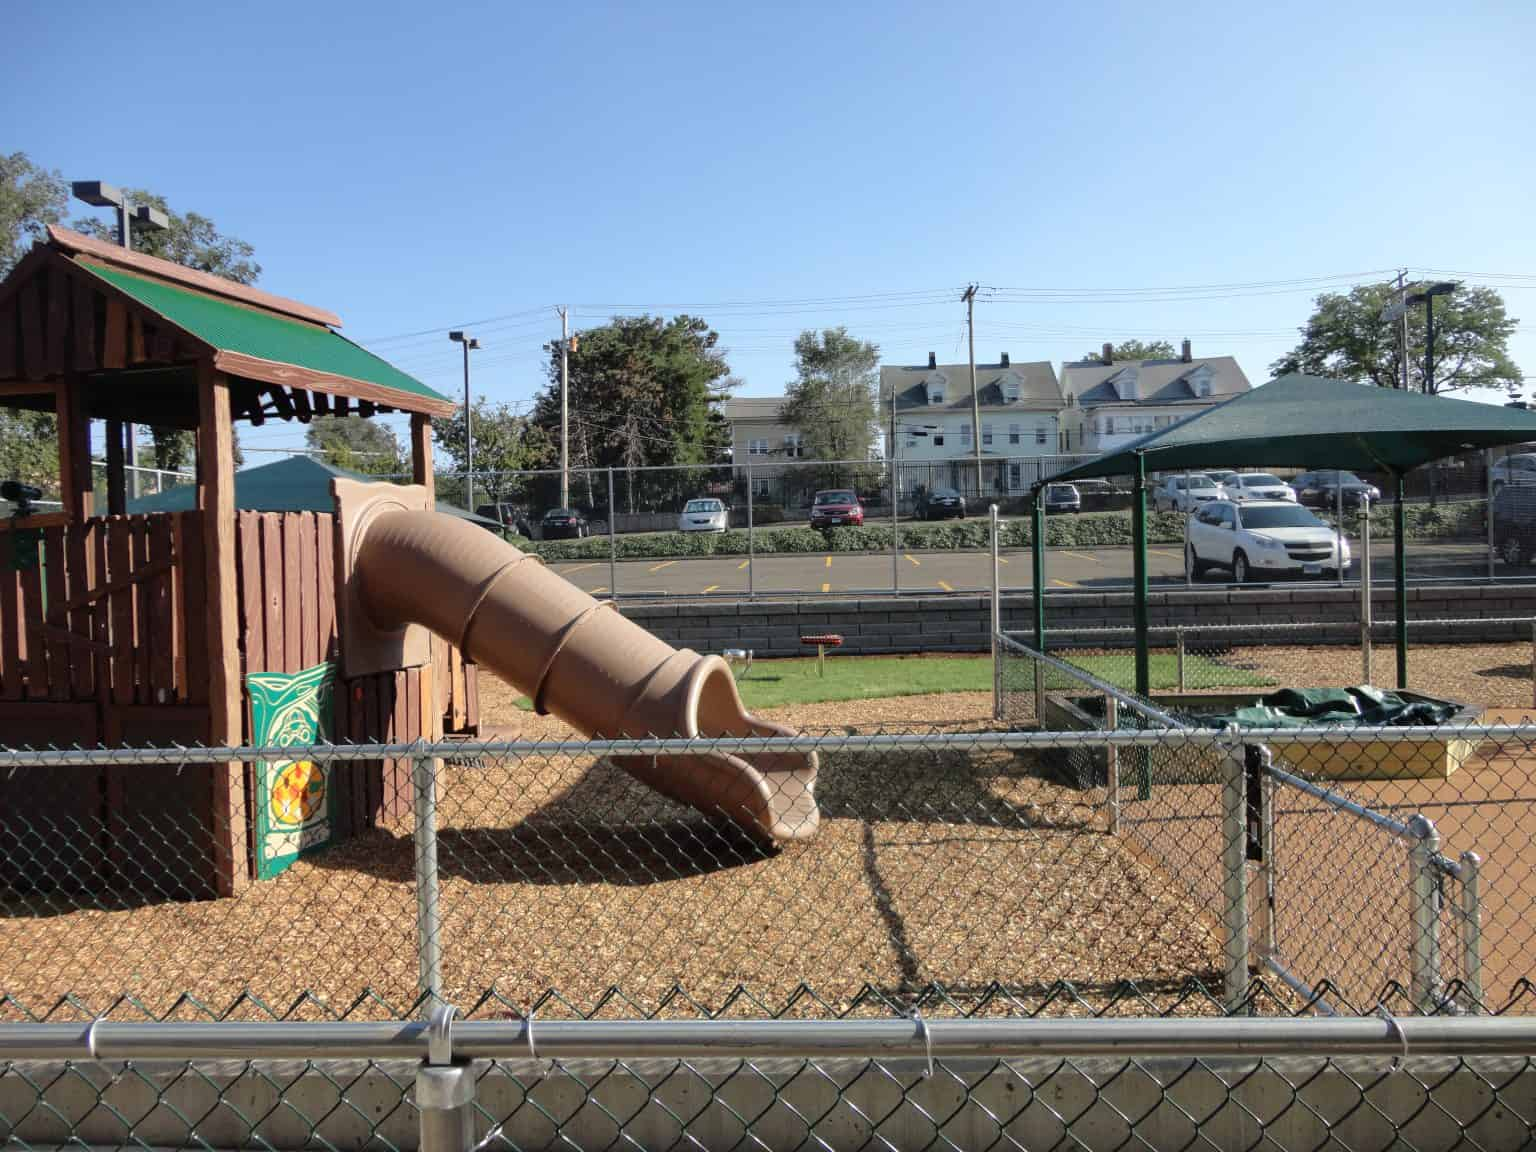 phyllis-bodel-daycare-playground-new-haven-ct_17939888150_o-1536x1152